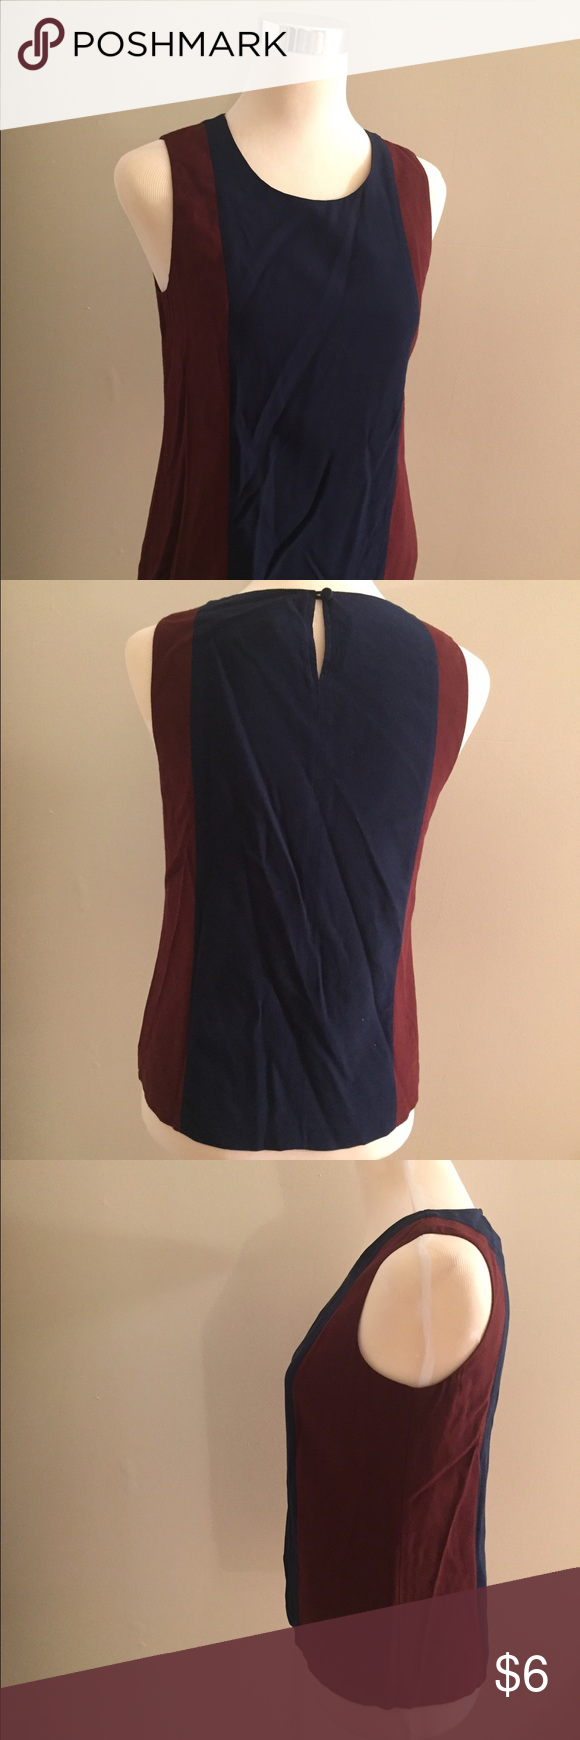 531770d1749fd J Crew Two Tone Top Two tone top with key hole in back. Can be paired with  jeans or a pencil skirt. Colors are great for fall. J. Crew Tops Blouses